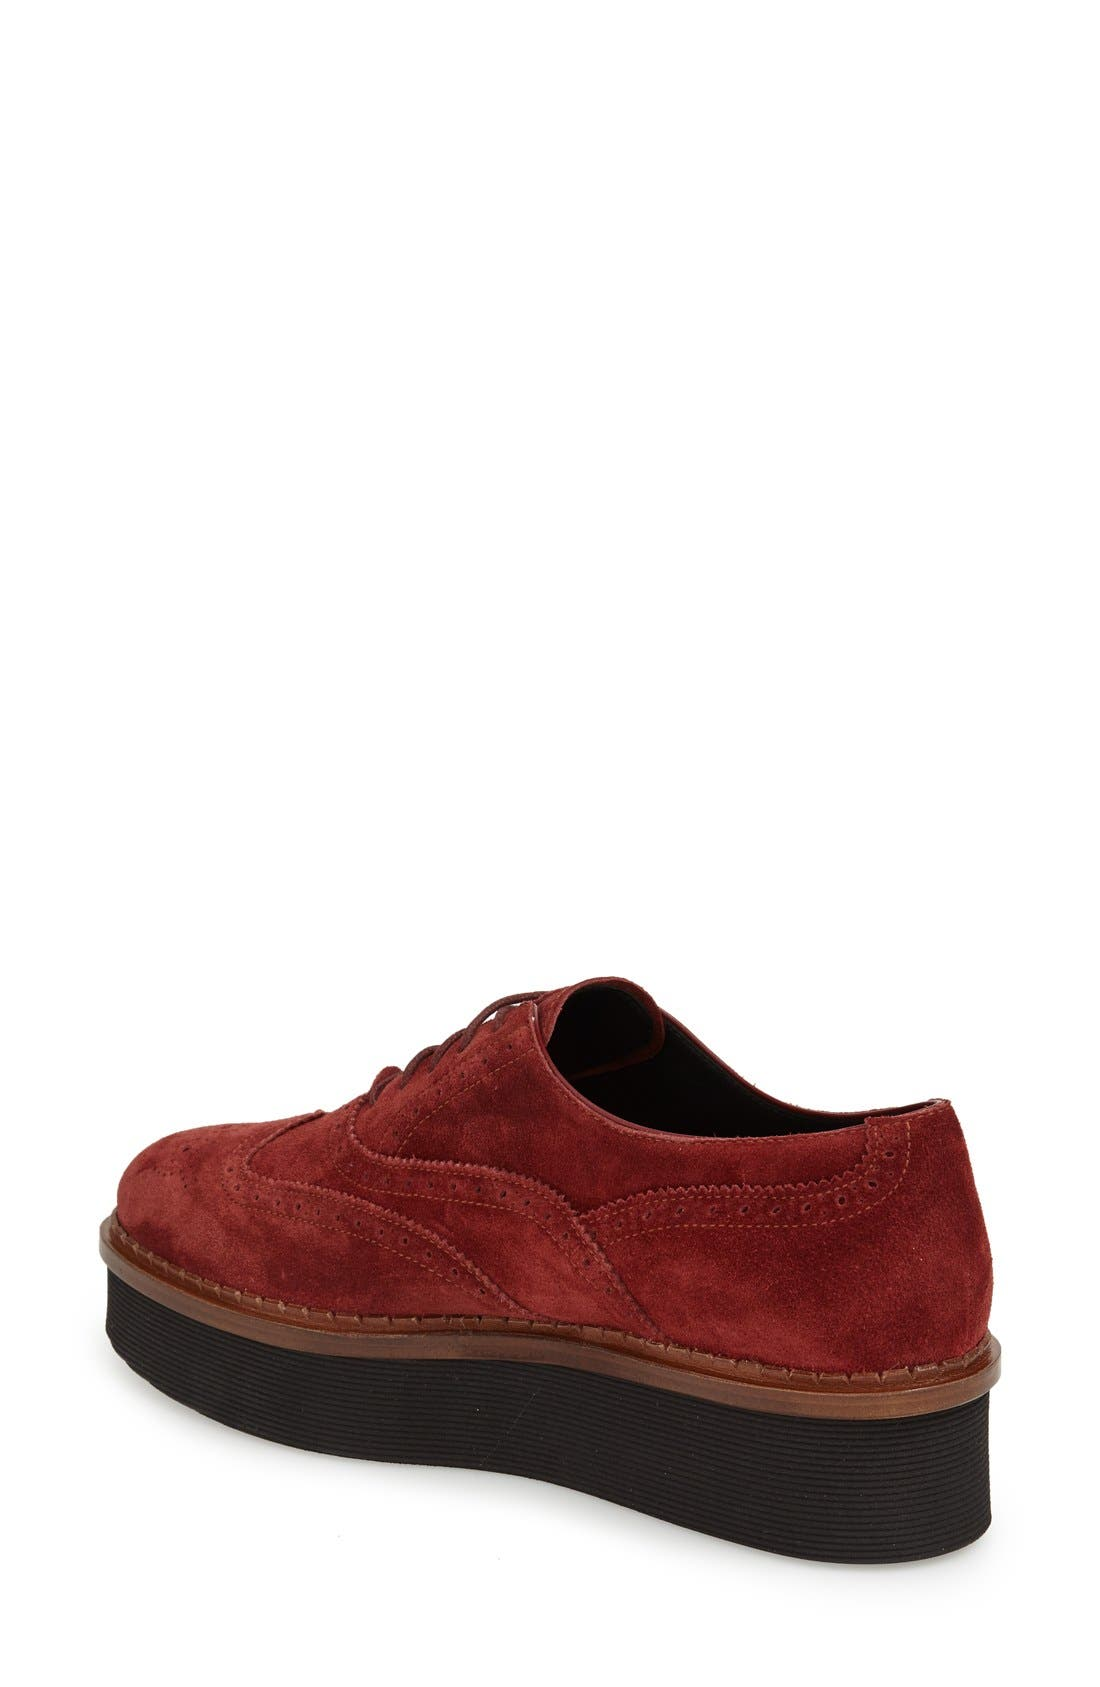 Alternate Image 2  - Tod's 'Lightsole' Creeper Wingtip Oxford (Women) (Nordstrom Exclusive)